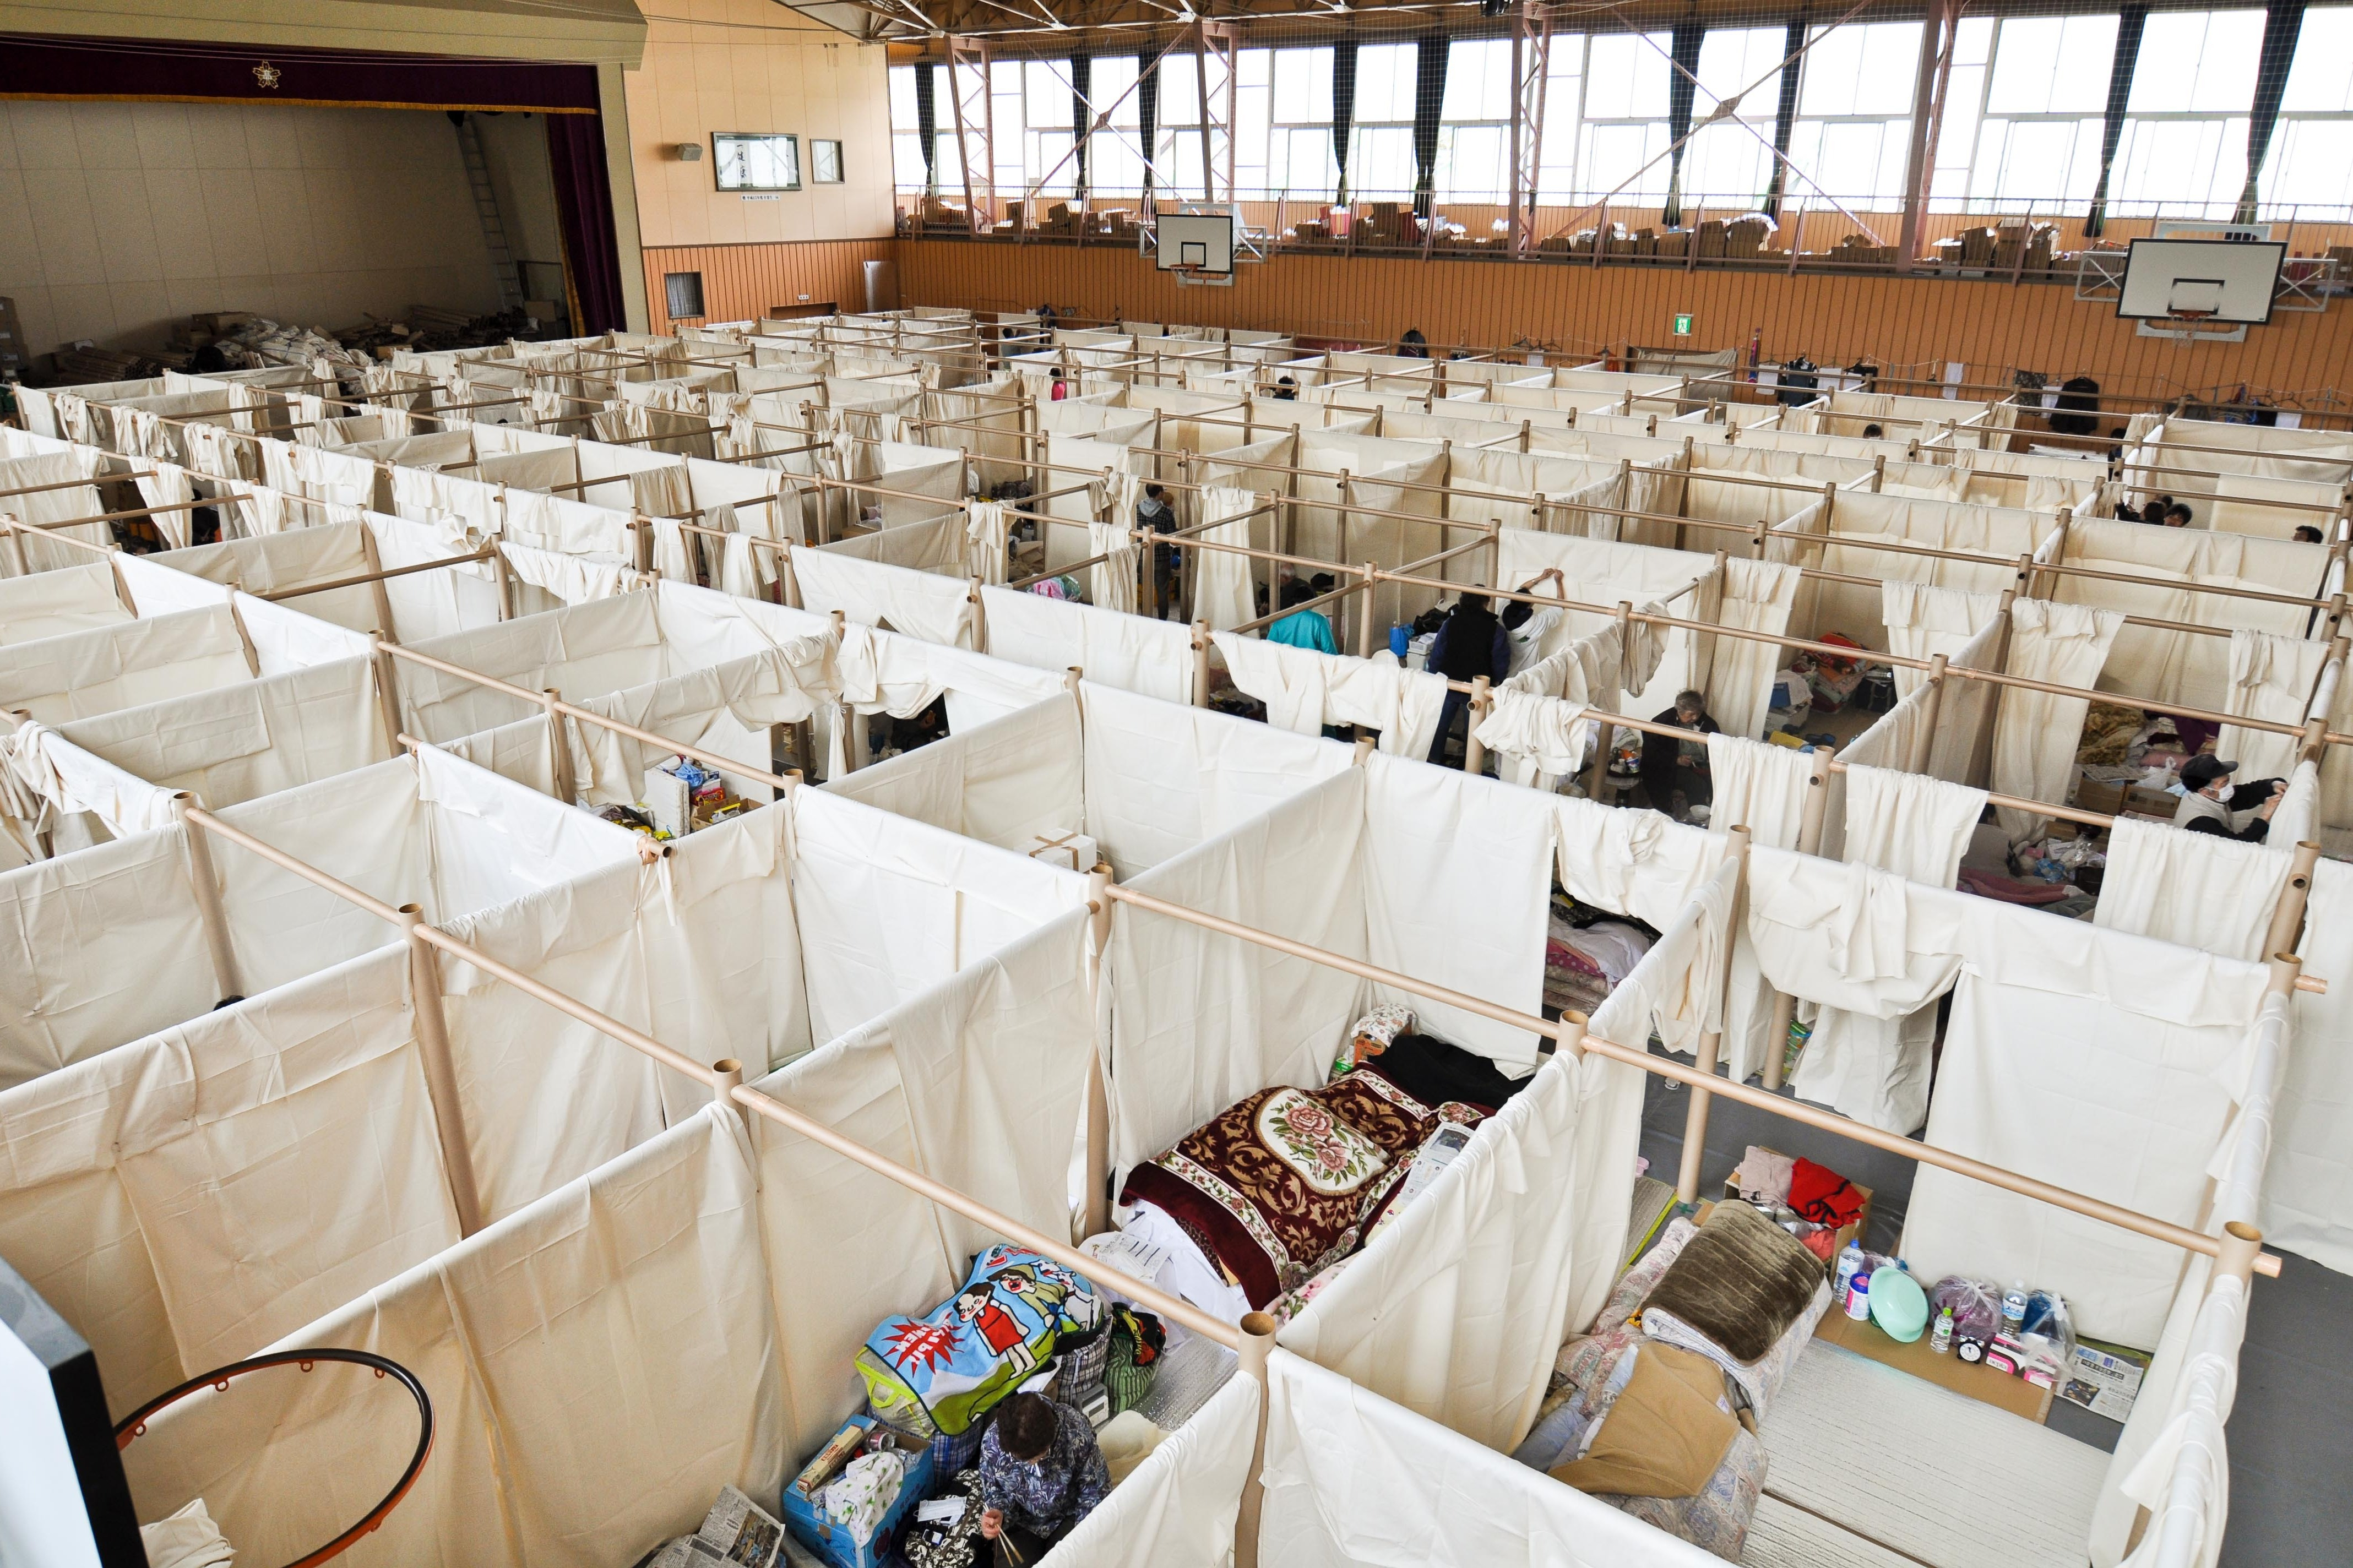 Ban developed a paper partition system -- like this one in Japan in 2011 -- to give evacuees privacy in crowded shelters.